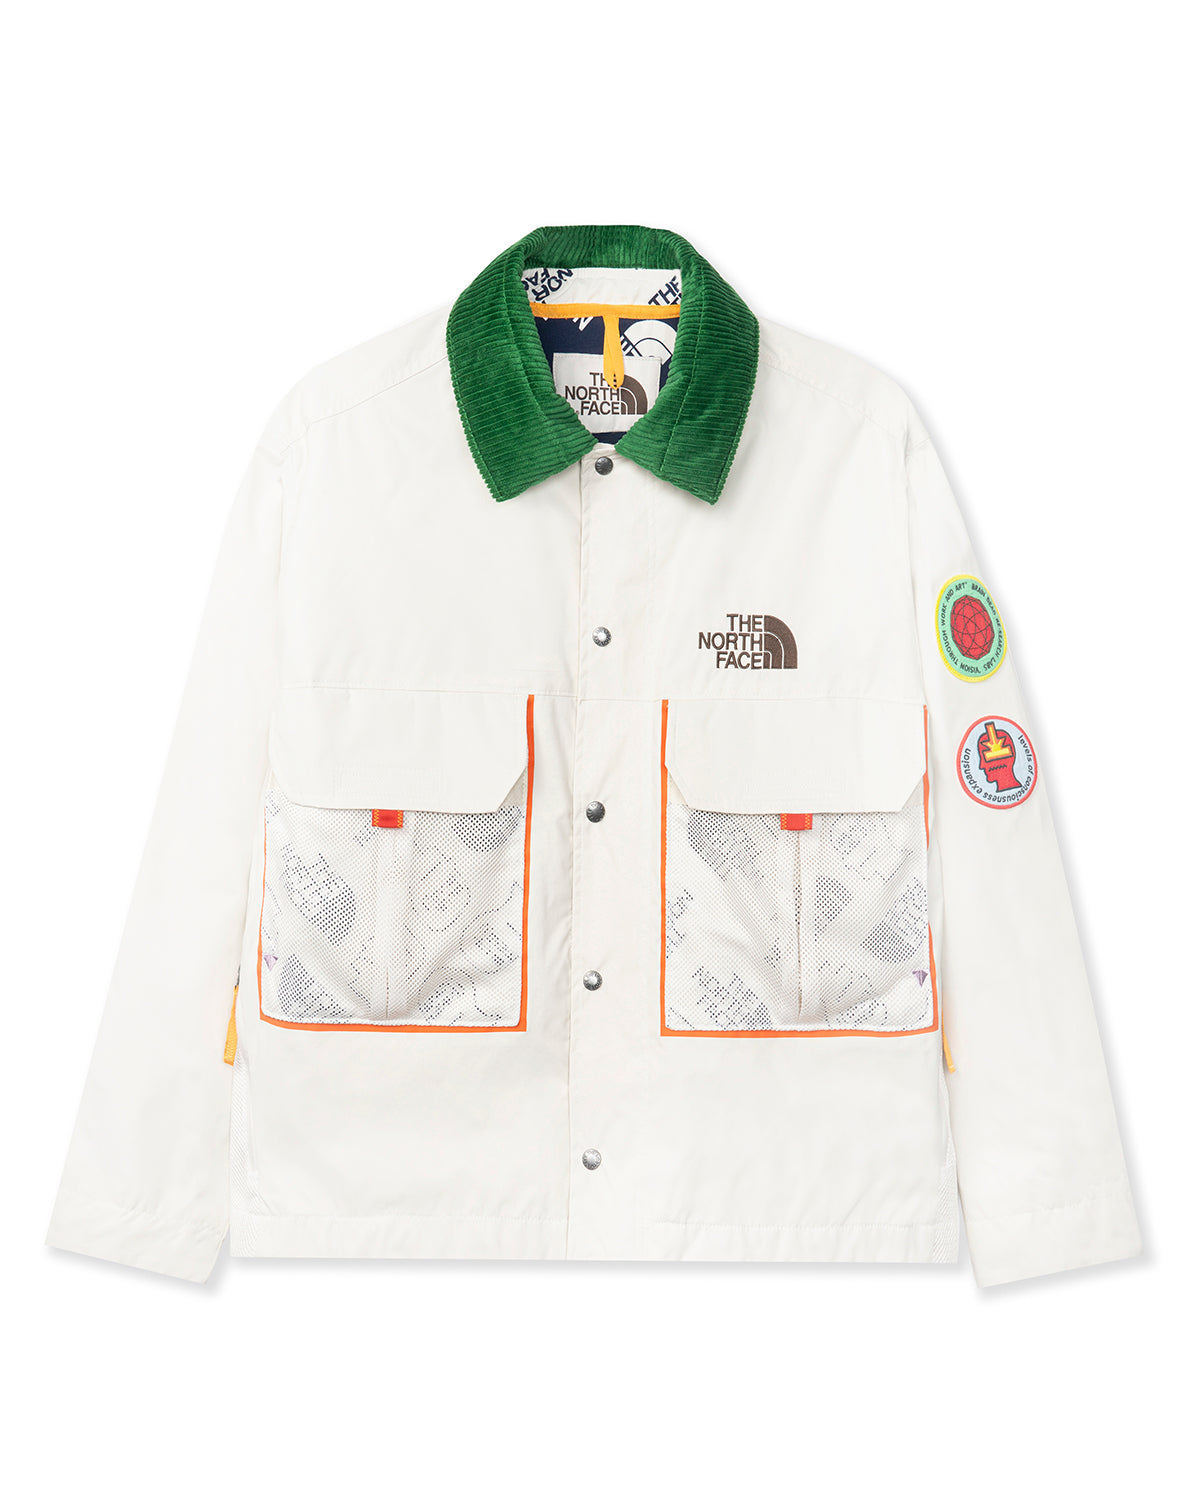 The North Face Oversized Mountain Chore Coat Vintage White